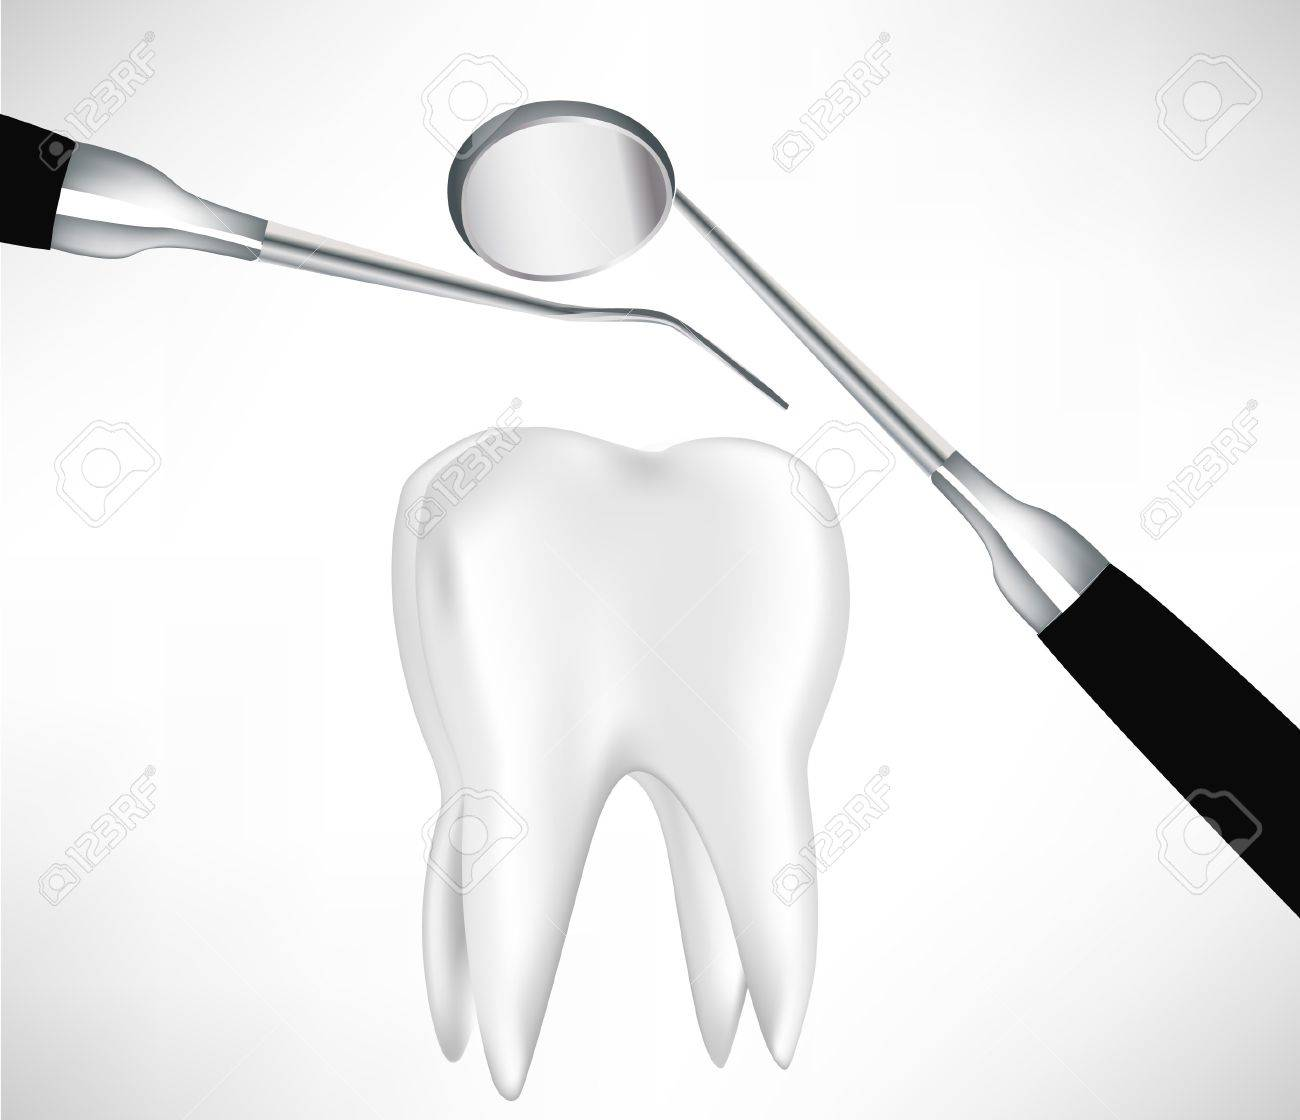 tooth examined by dental instruments isolated on white Stock Vector - 10884723